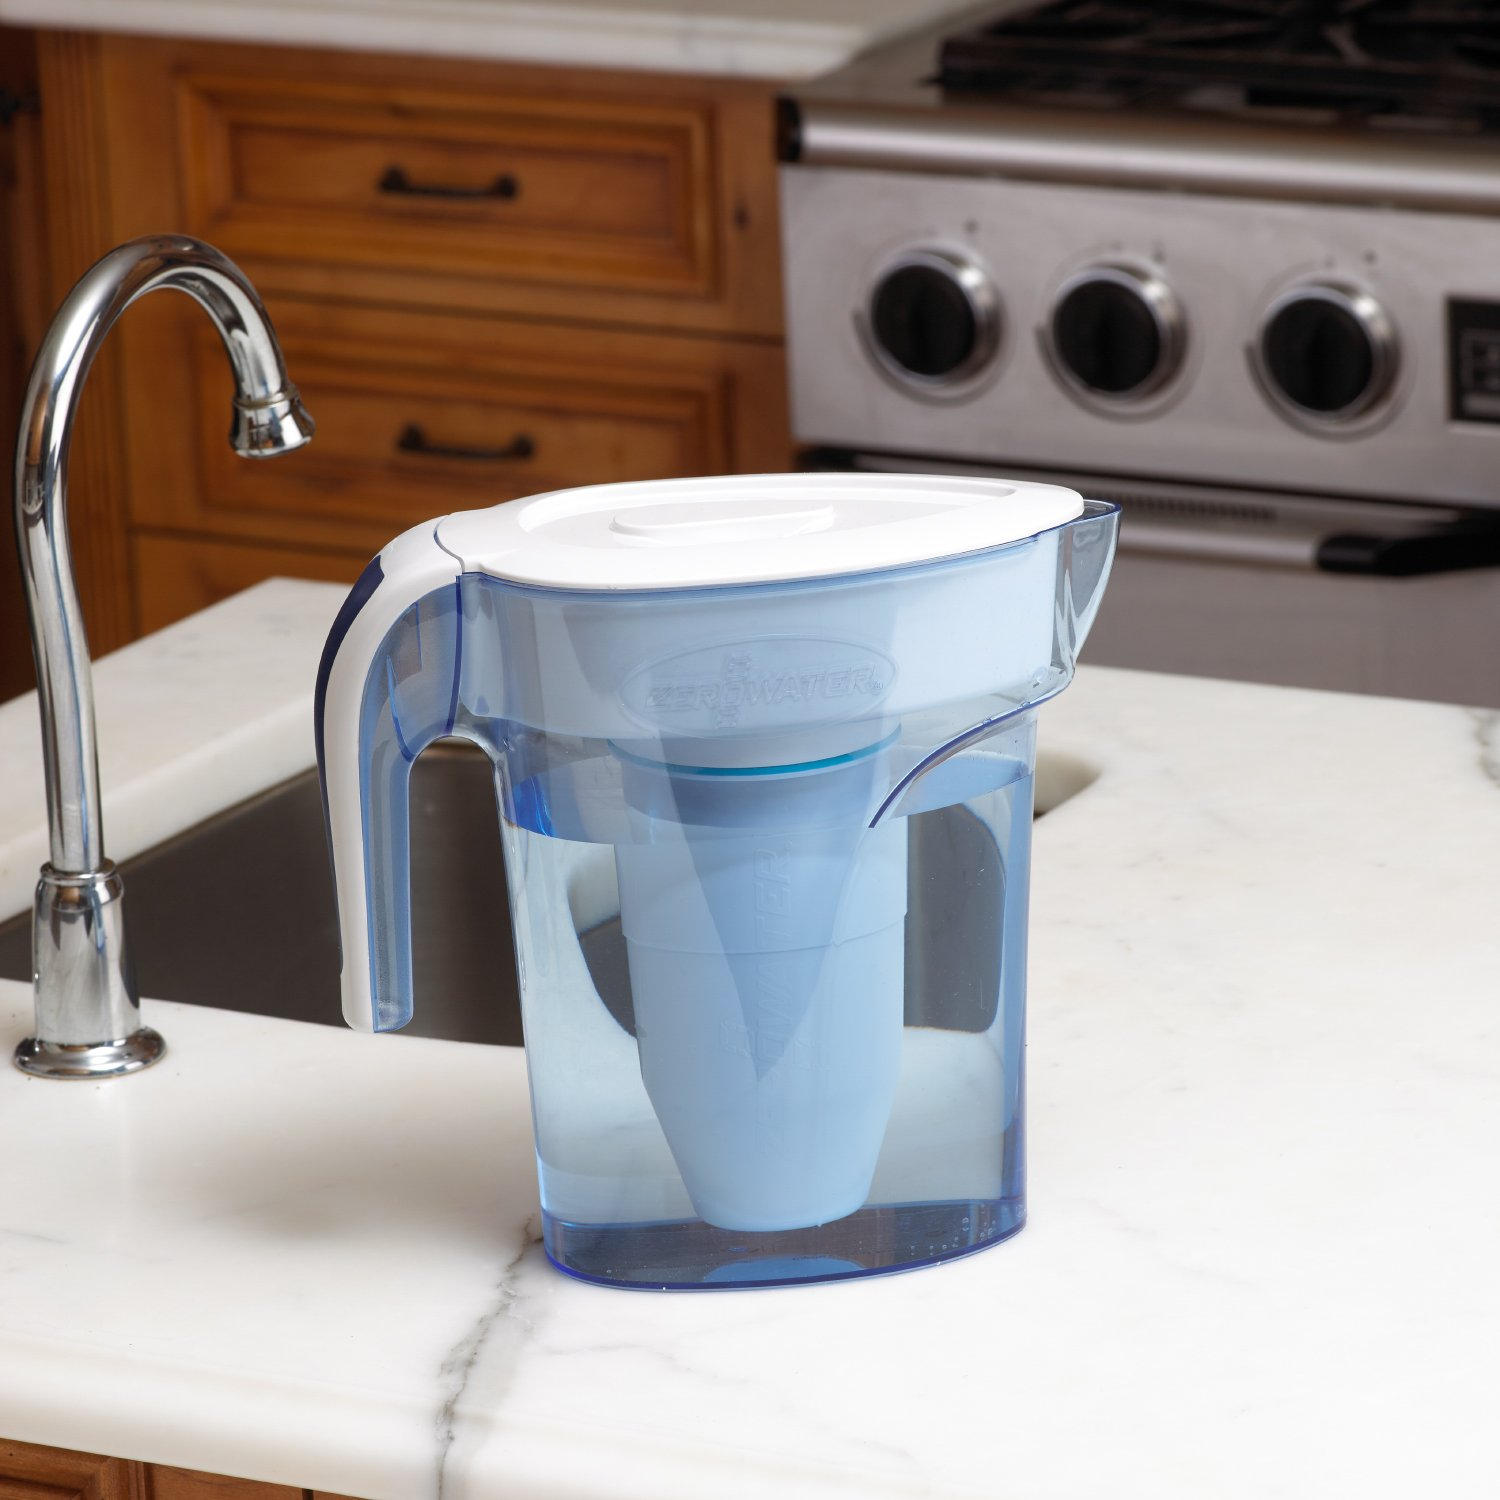 Amazon.com: ZeroWater, 6 Cup Pitcher with Free Water Quality Meter ...